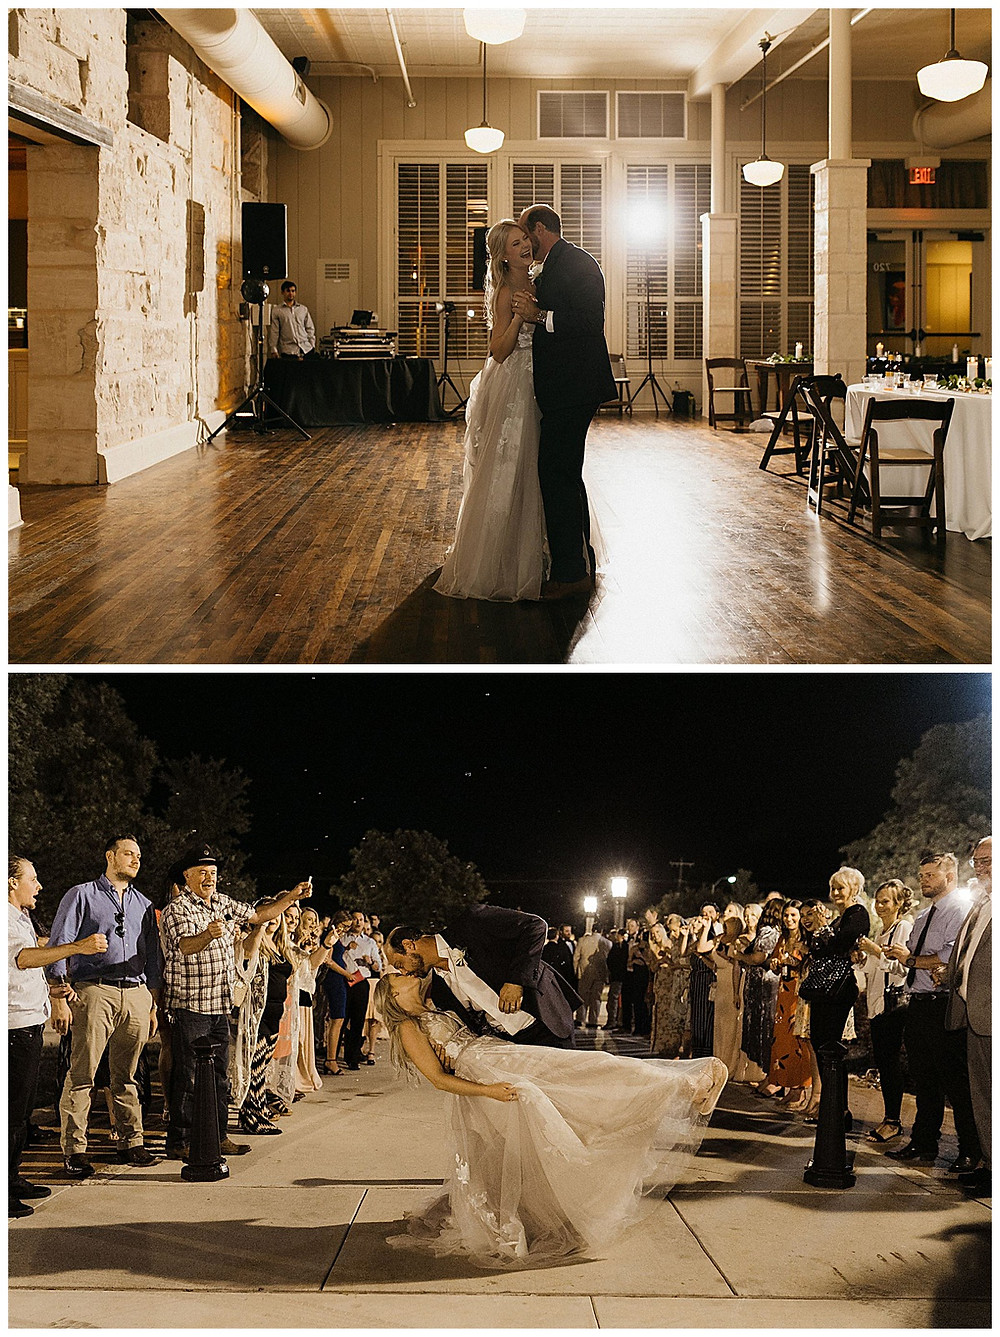 Wedding Reception | Downtown Kerrville Wedding | Events at Water St Wedding | Kerrville Wedding | Schreiner Mansion Wedding | Kerrville Wedding Planner | Bride and Groom | San Antonio Wedding Planner